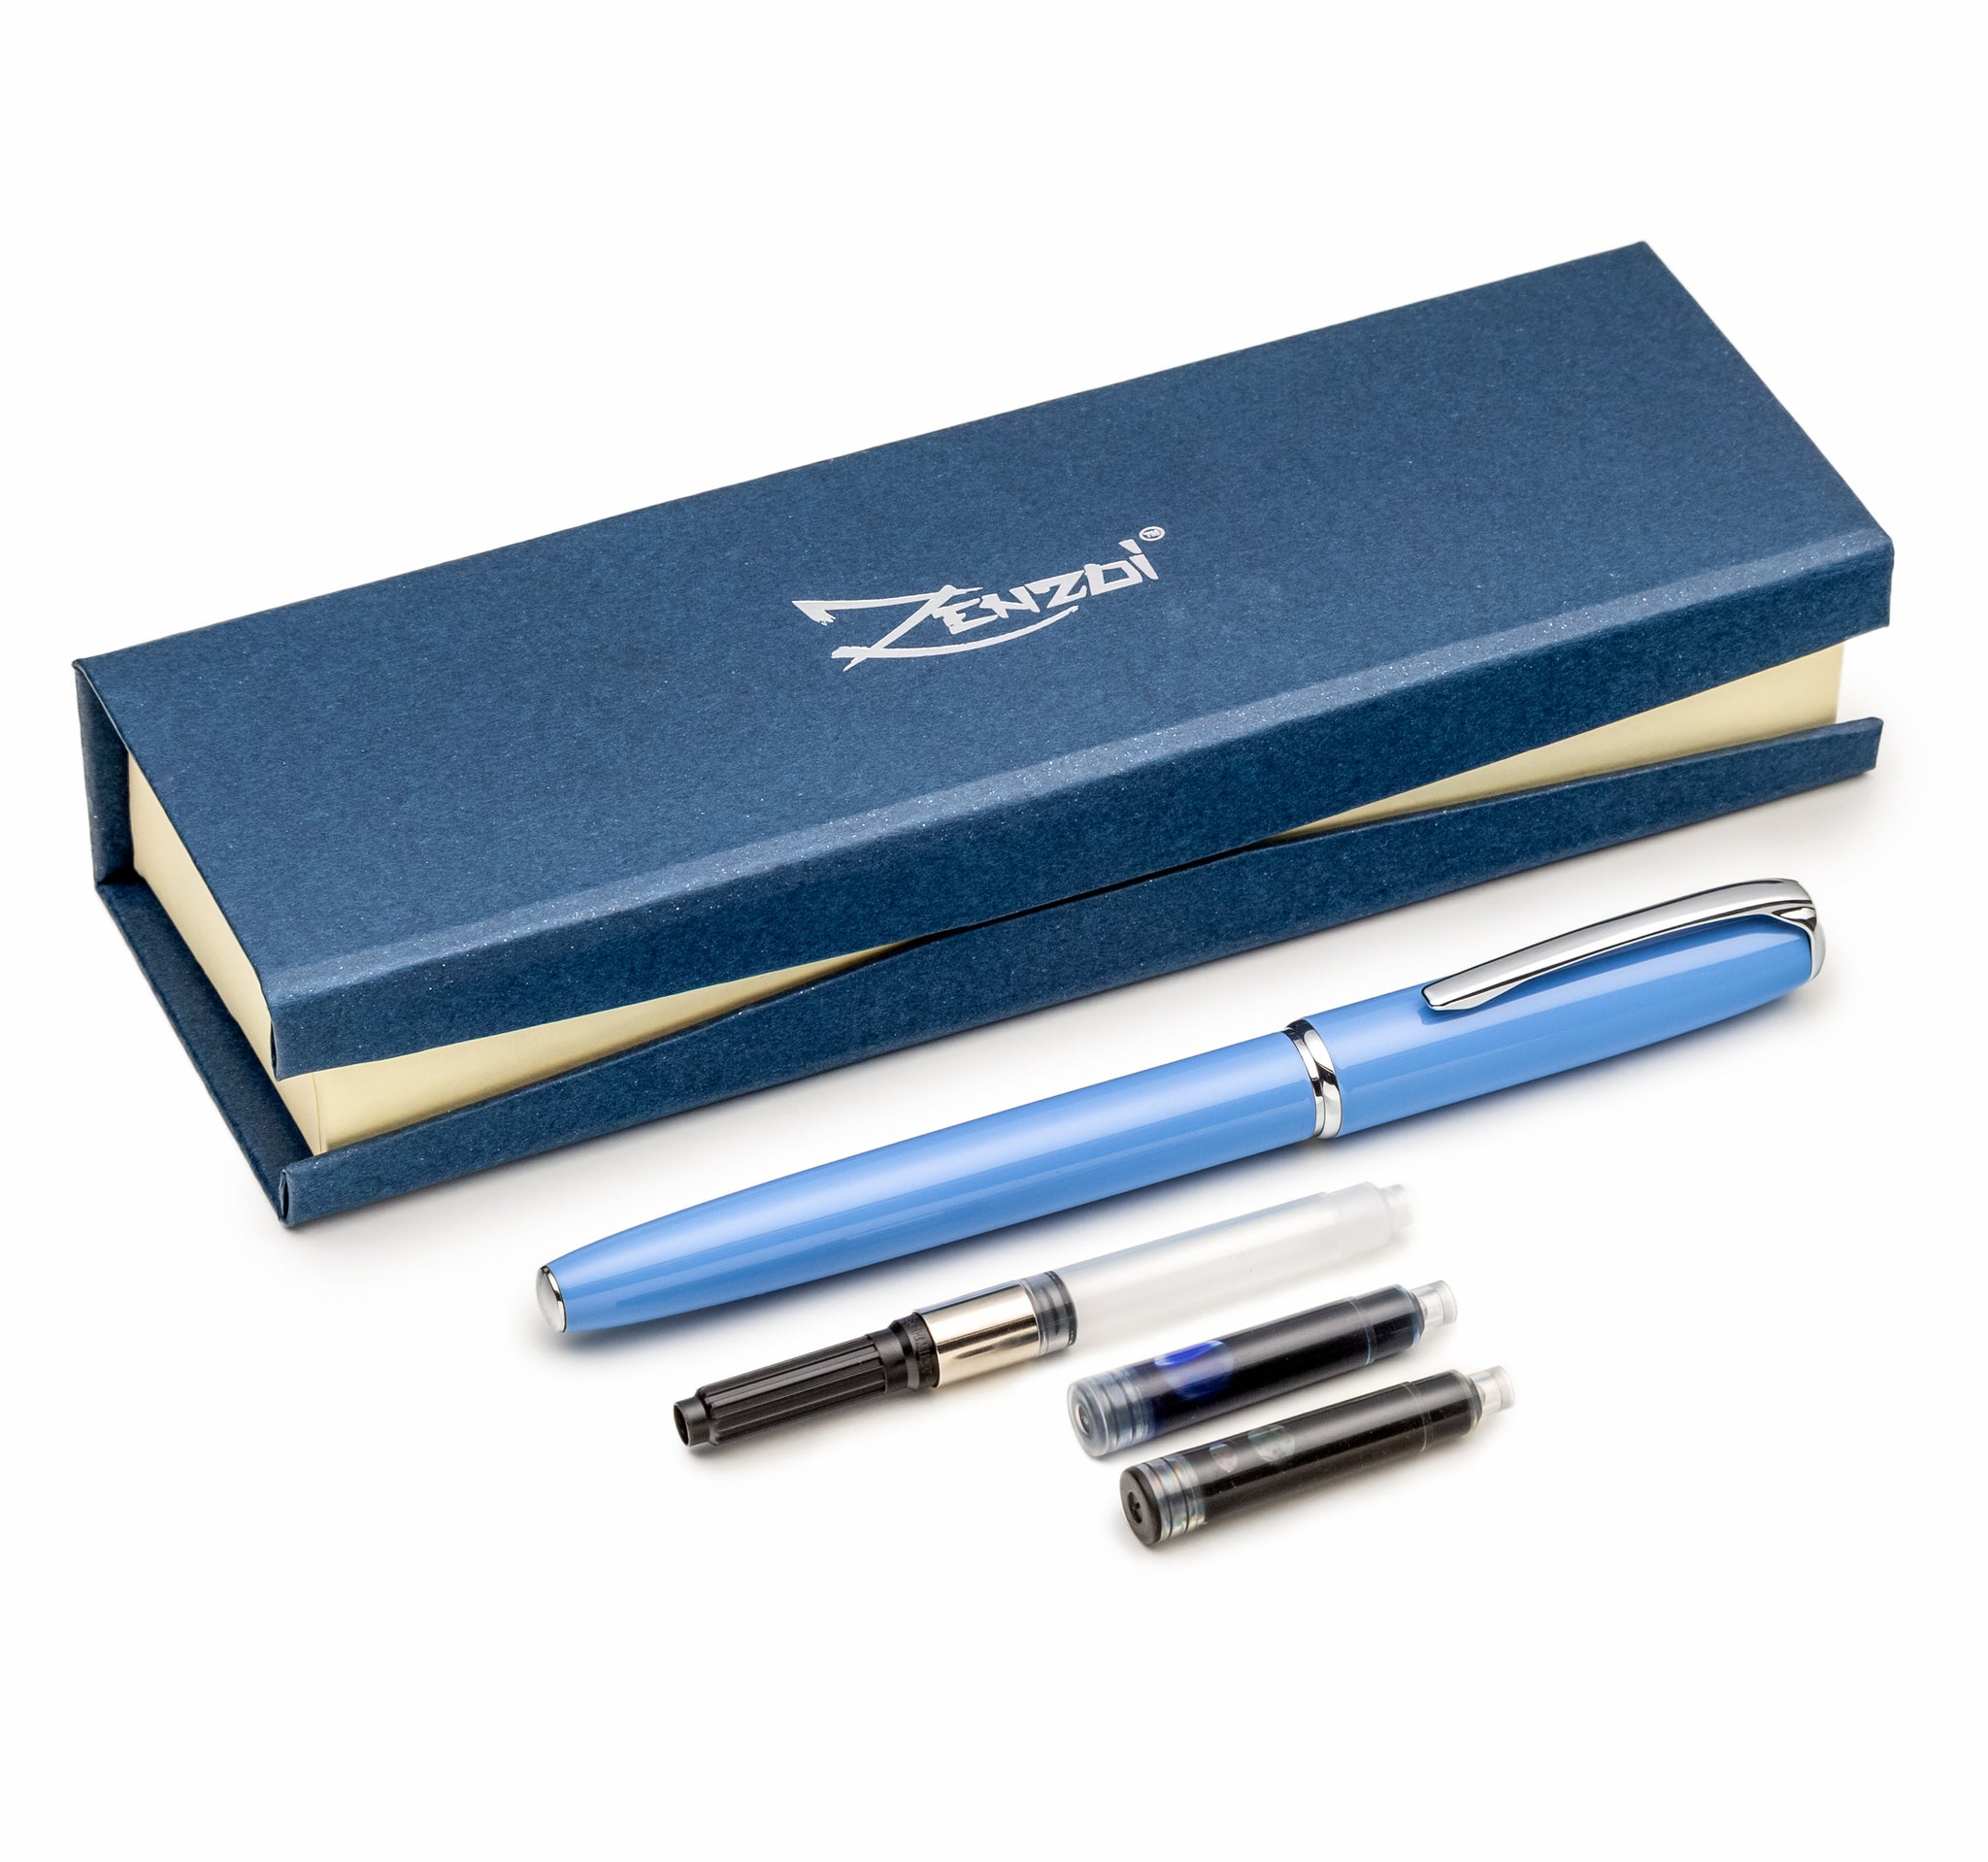 Classy and Professional Sky Blue Fountain Pen Set with Schmidt Fine Nib